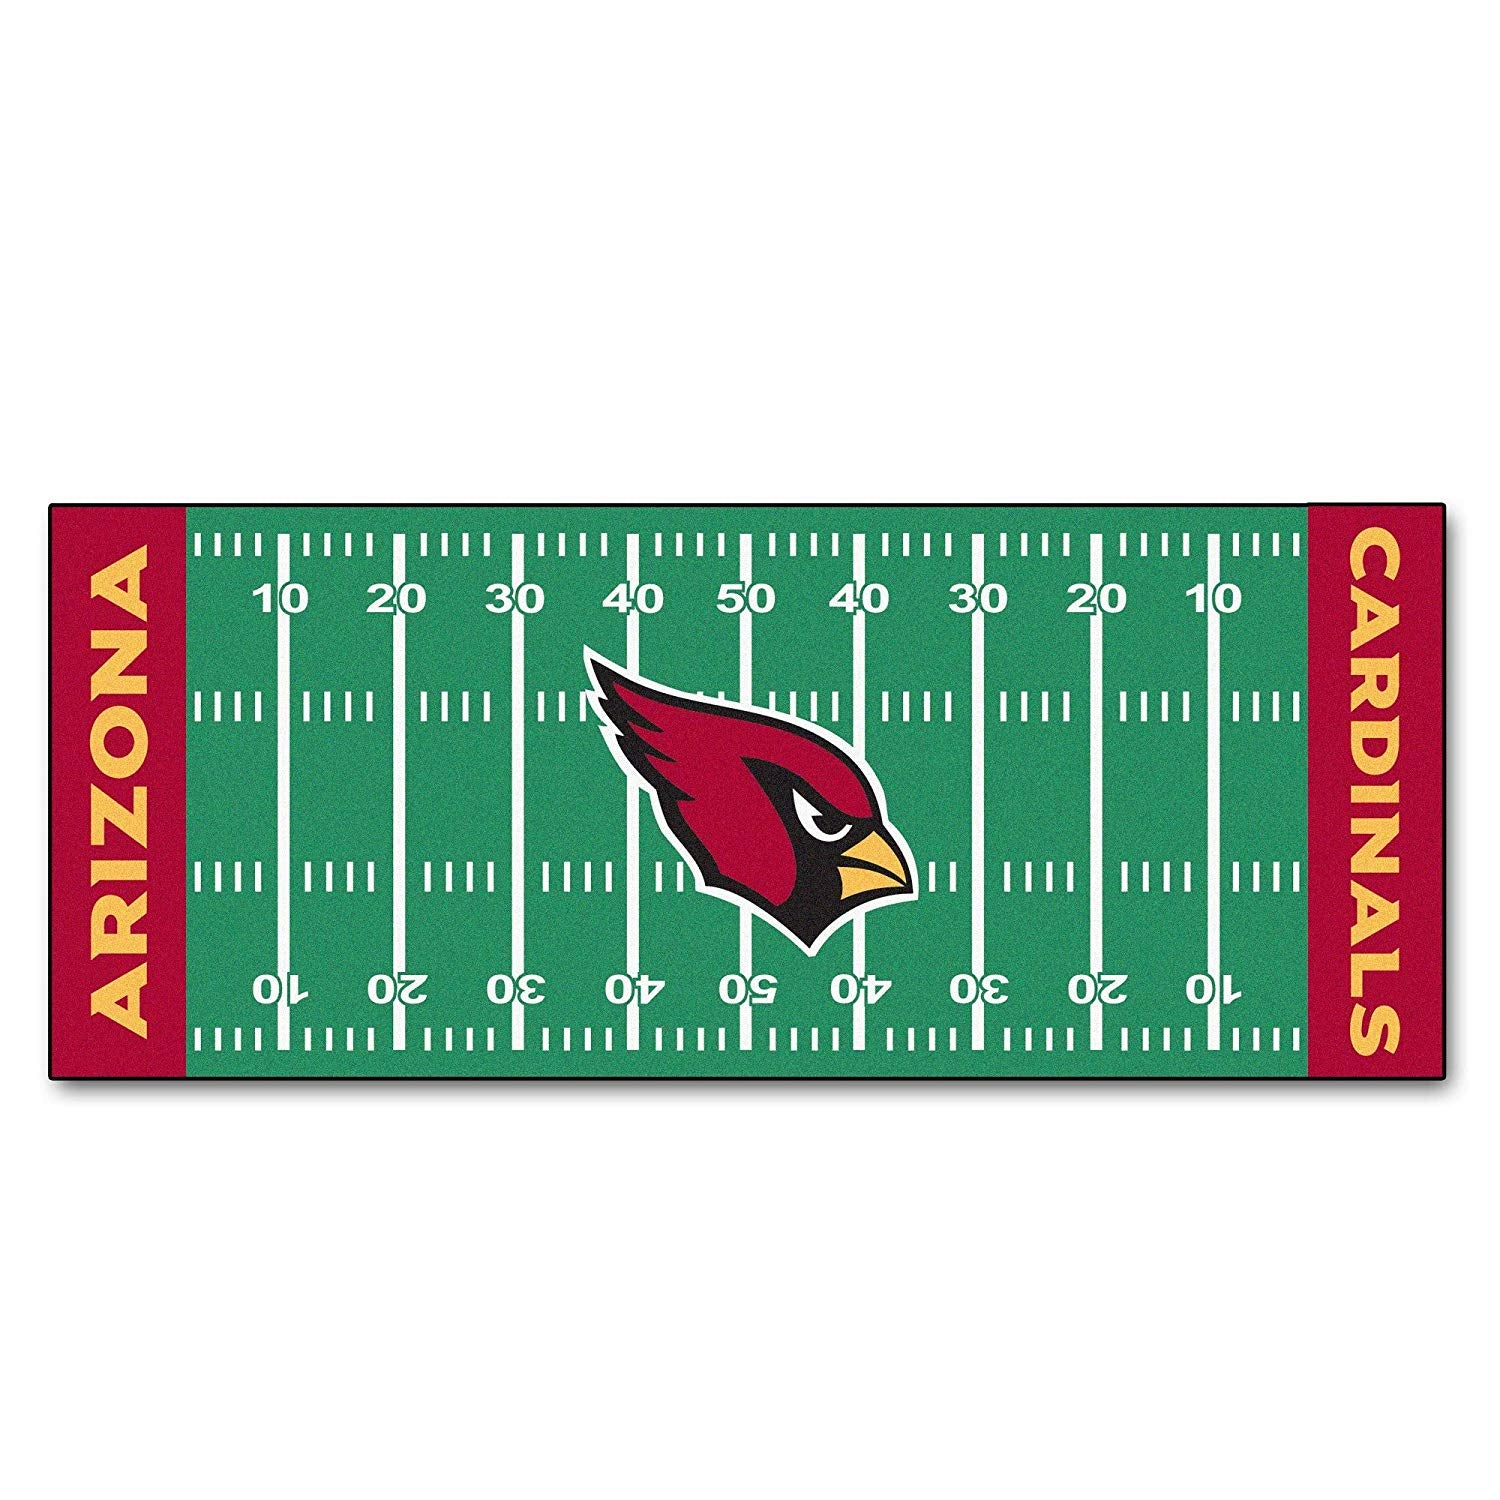 30x72 NFL Cardinals Rug Football Field Runner xl Long Yoga Mat Sports Area Rug Boys Bedroom Living Room Bathroom Rugs Runner Floor Carpet Athletic